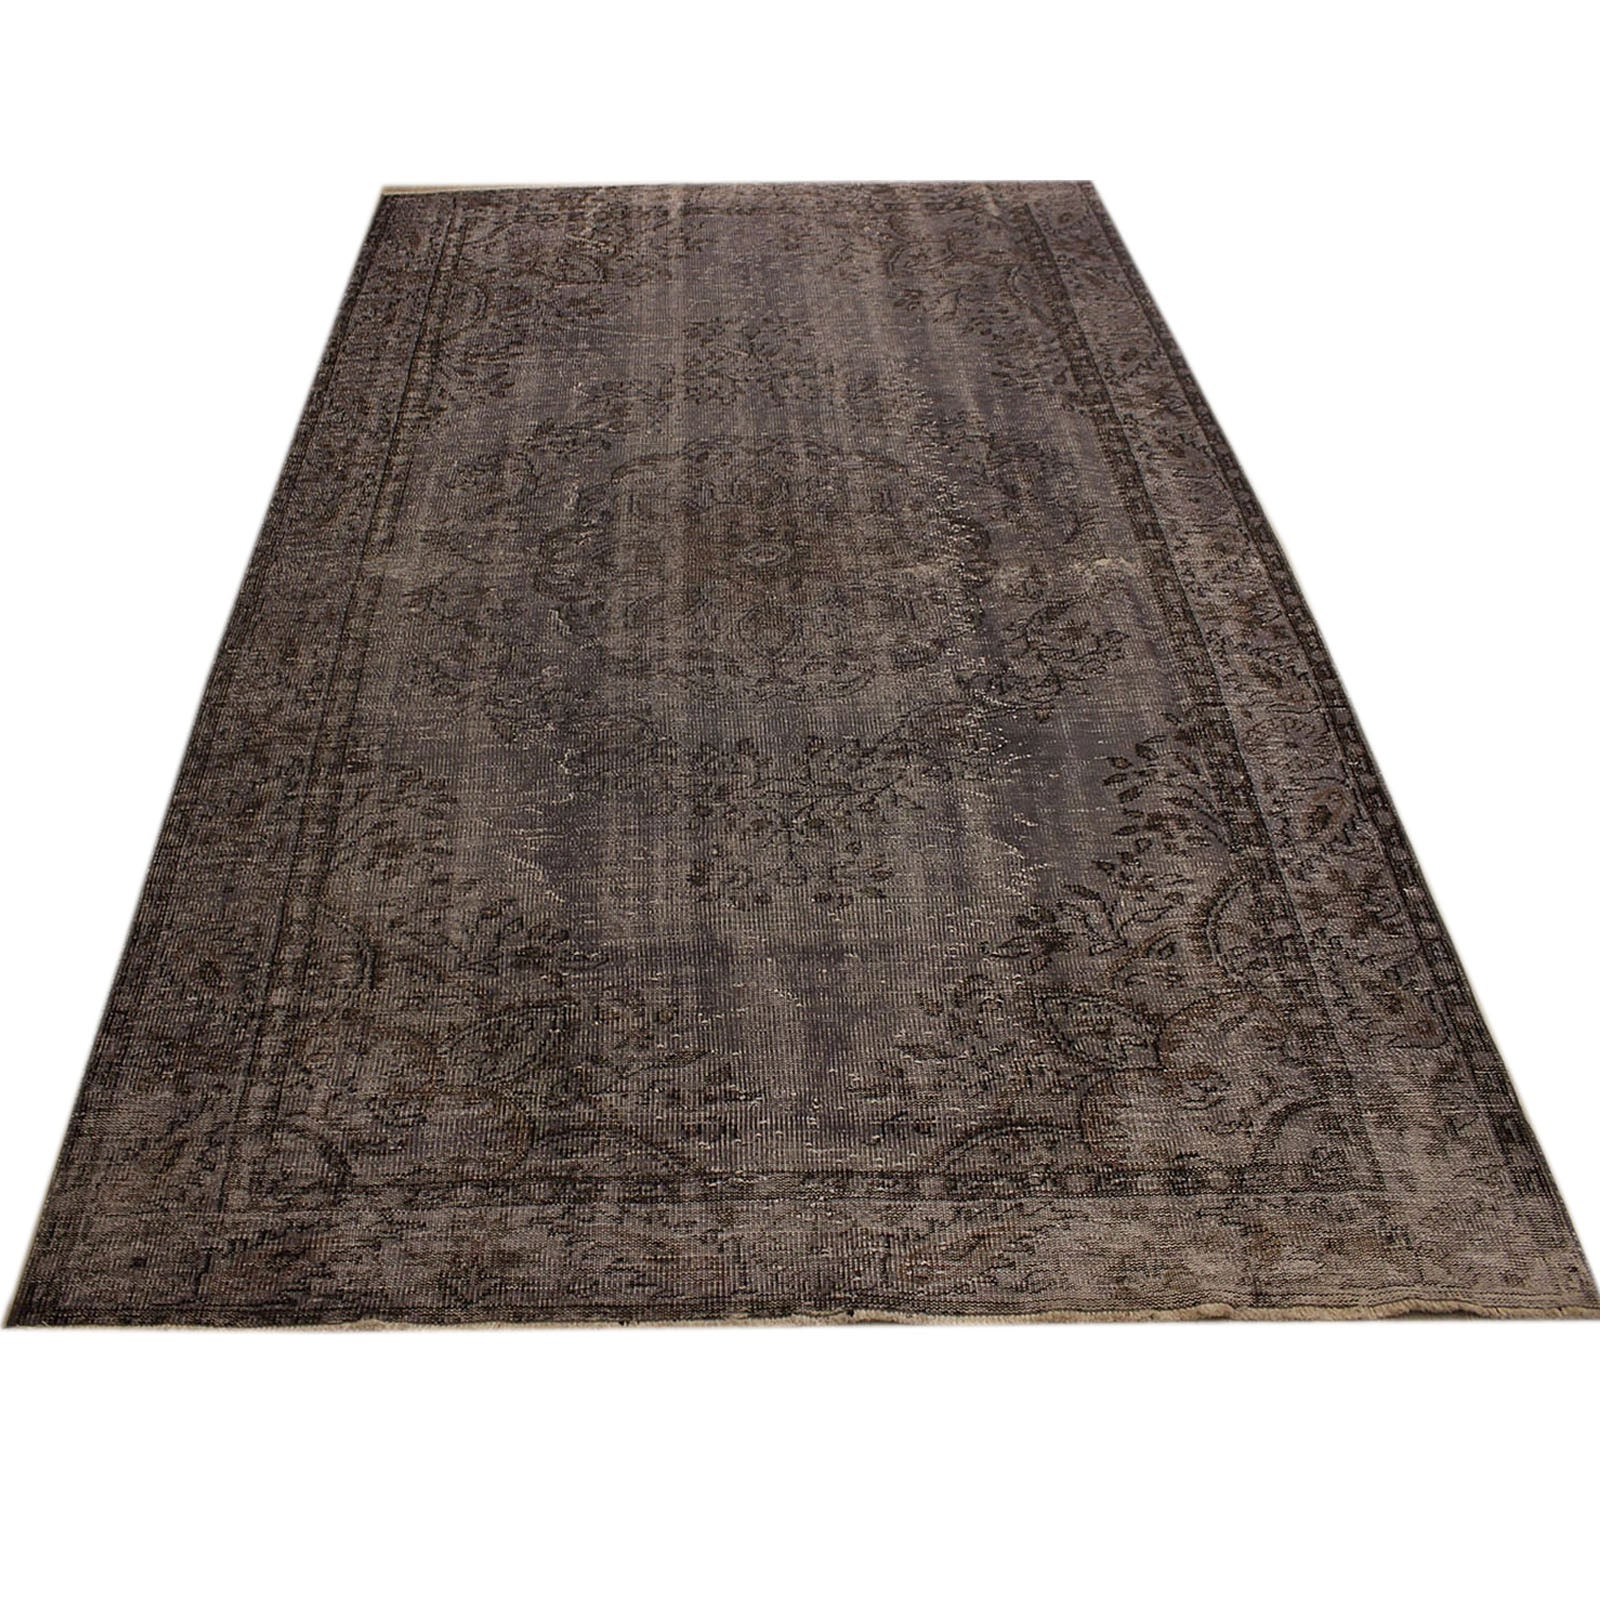 Hali 188X303 CM Bursa Handmade over dyed rug 2438